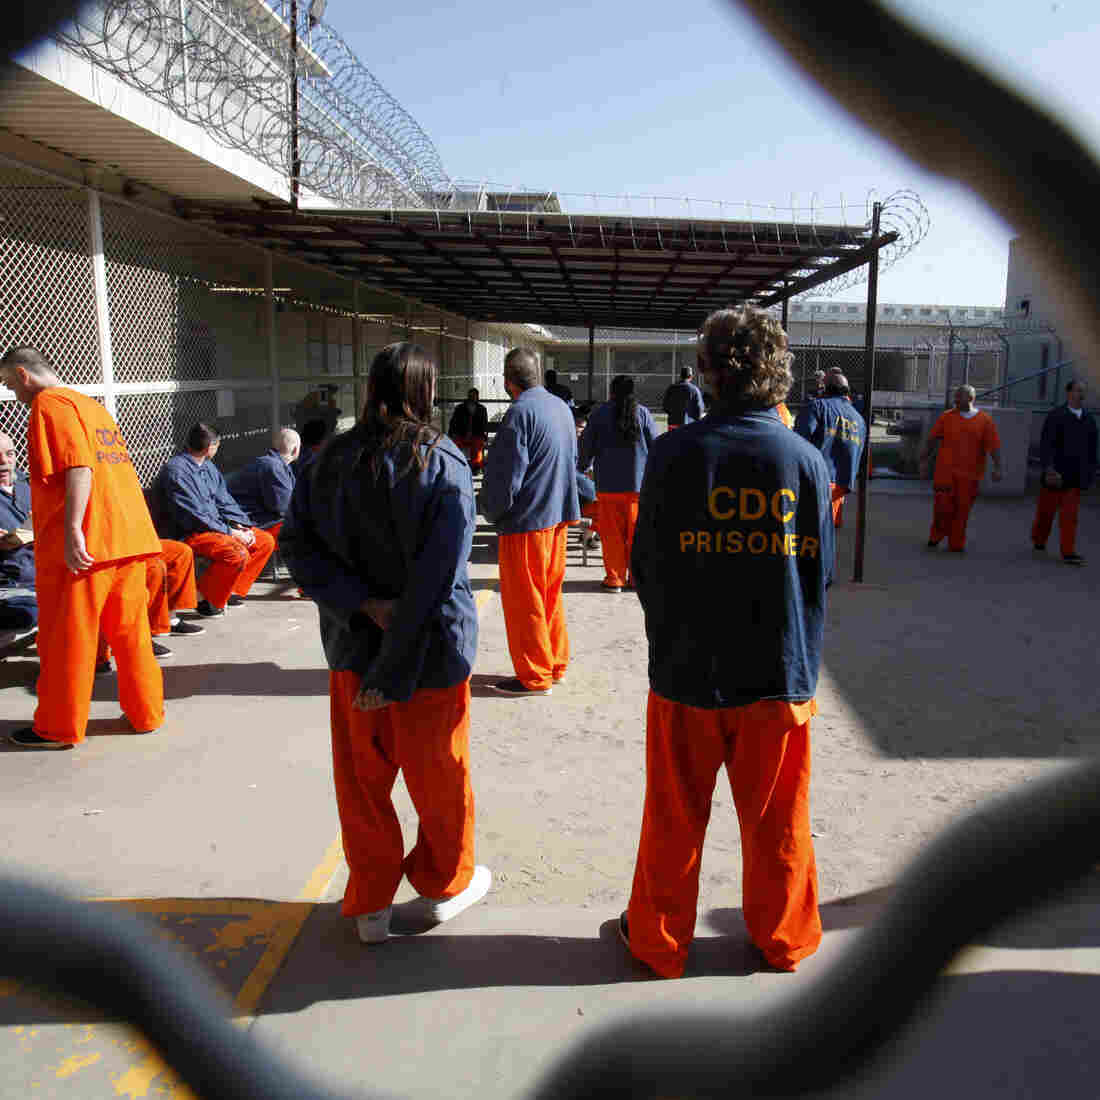 How Long Is Too Long? Congress Revisits Mandatory Sentences